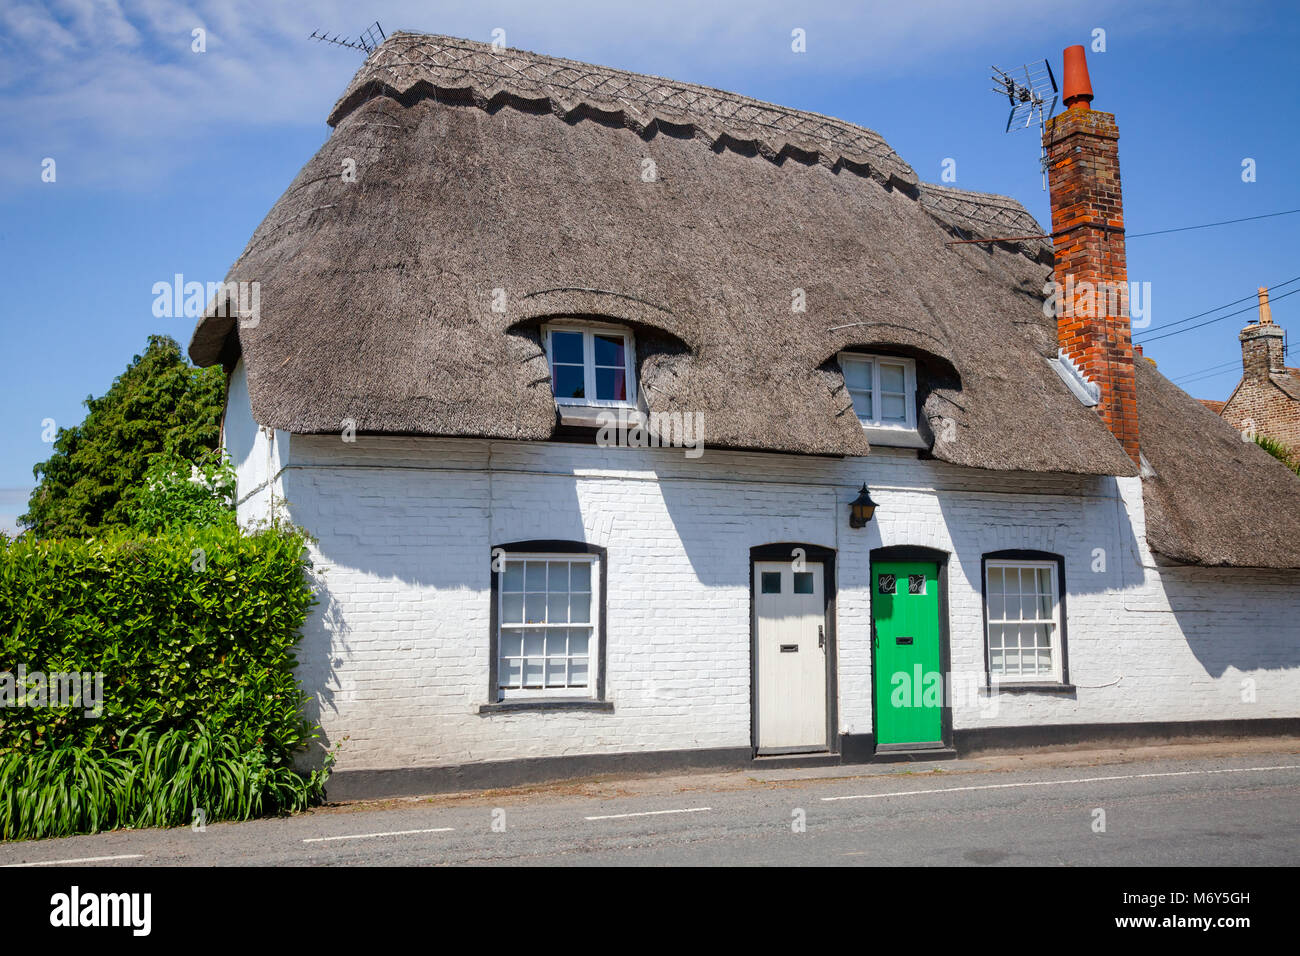 A typical traditional English country thatched house or cottage with white walls in rural Southern England UK - Stock Image